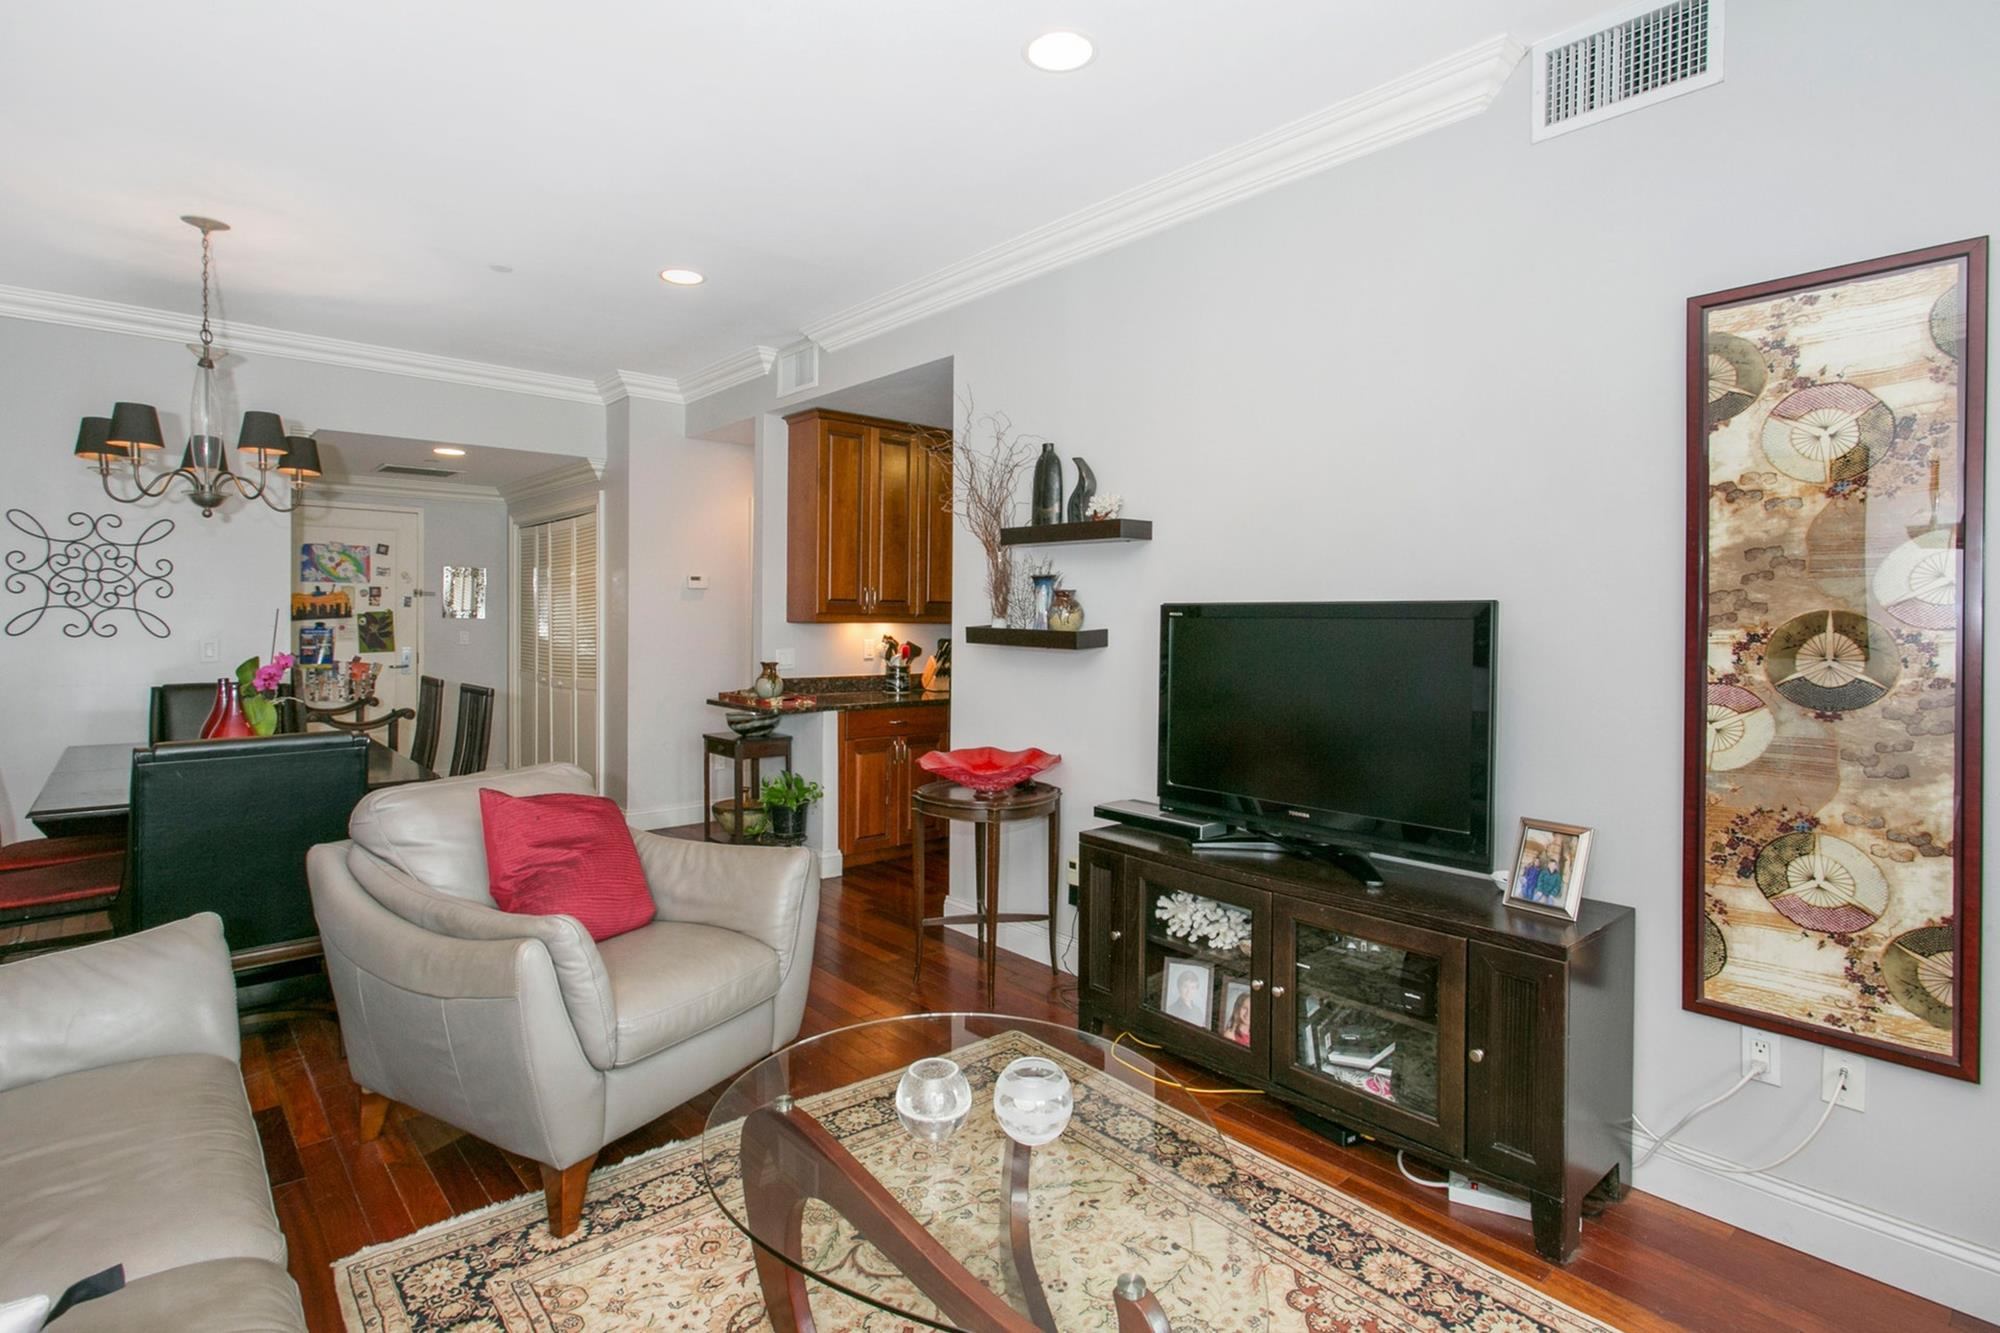 CENTRAL RIVERDALE: 3-Bd. Contemporary Condo w/ Balcony, Laundry in Unit, Doorman & Indoor Parking at The Waterford